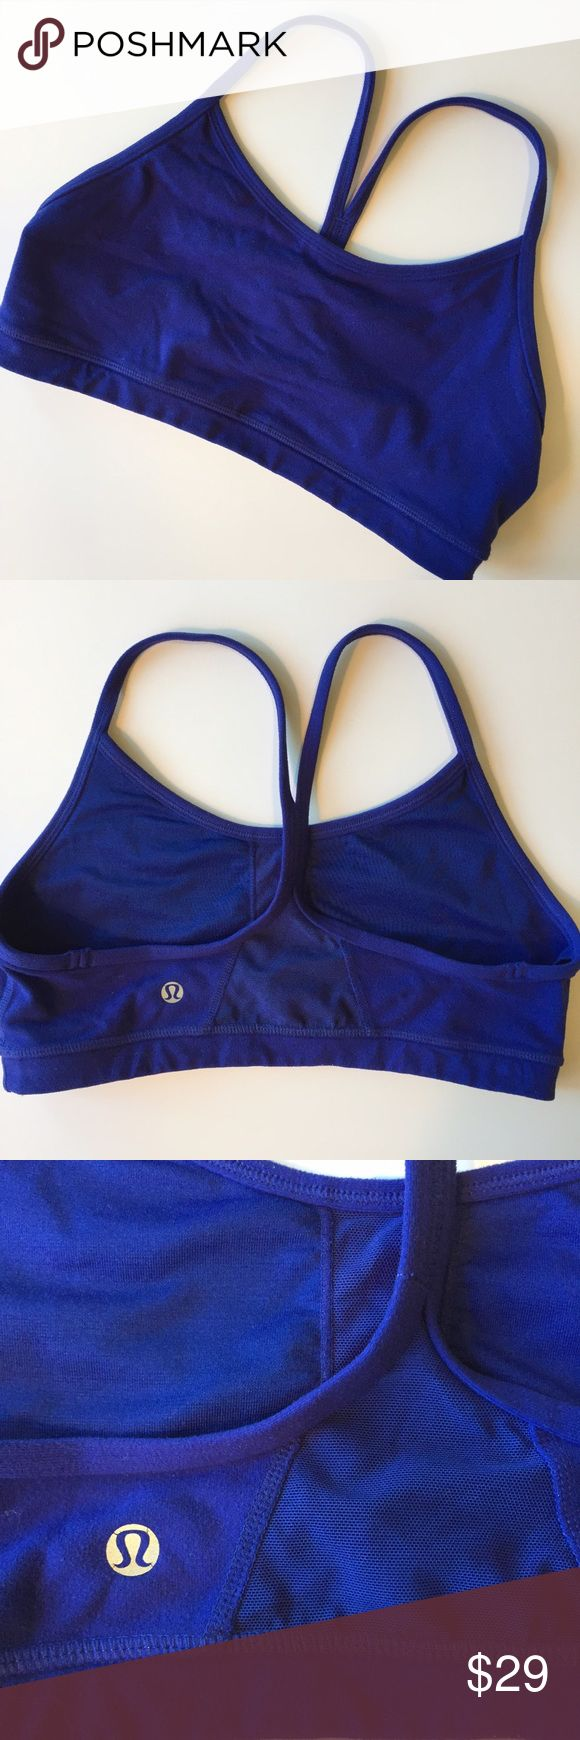 Lululemon Flow Y Sports Bra Royal Blue Size 6 Lululemon Flow Y Sports Bra. Size 6. Retail: $48. Royal blue color. Sweat-wicking. Racerback style. 4-ways stretch. Cottony soft handfeel! Quick recovery. Naturally breathable. Luon fabric. Mesh fabric venting in high-sweat areas to keep you cool. Size dot verified. Excellent pre-loved condition!  🛍20% Off Bundles of 2+ Items! lululemon athletica Intimates & Sleepwear Bras